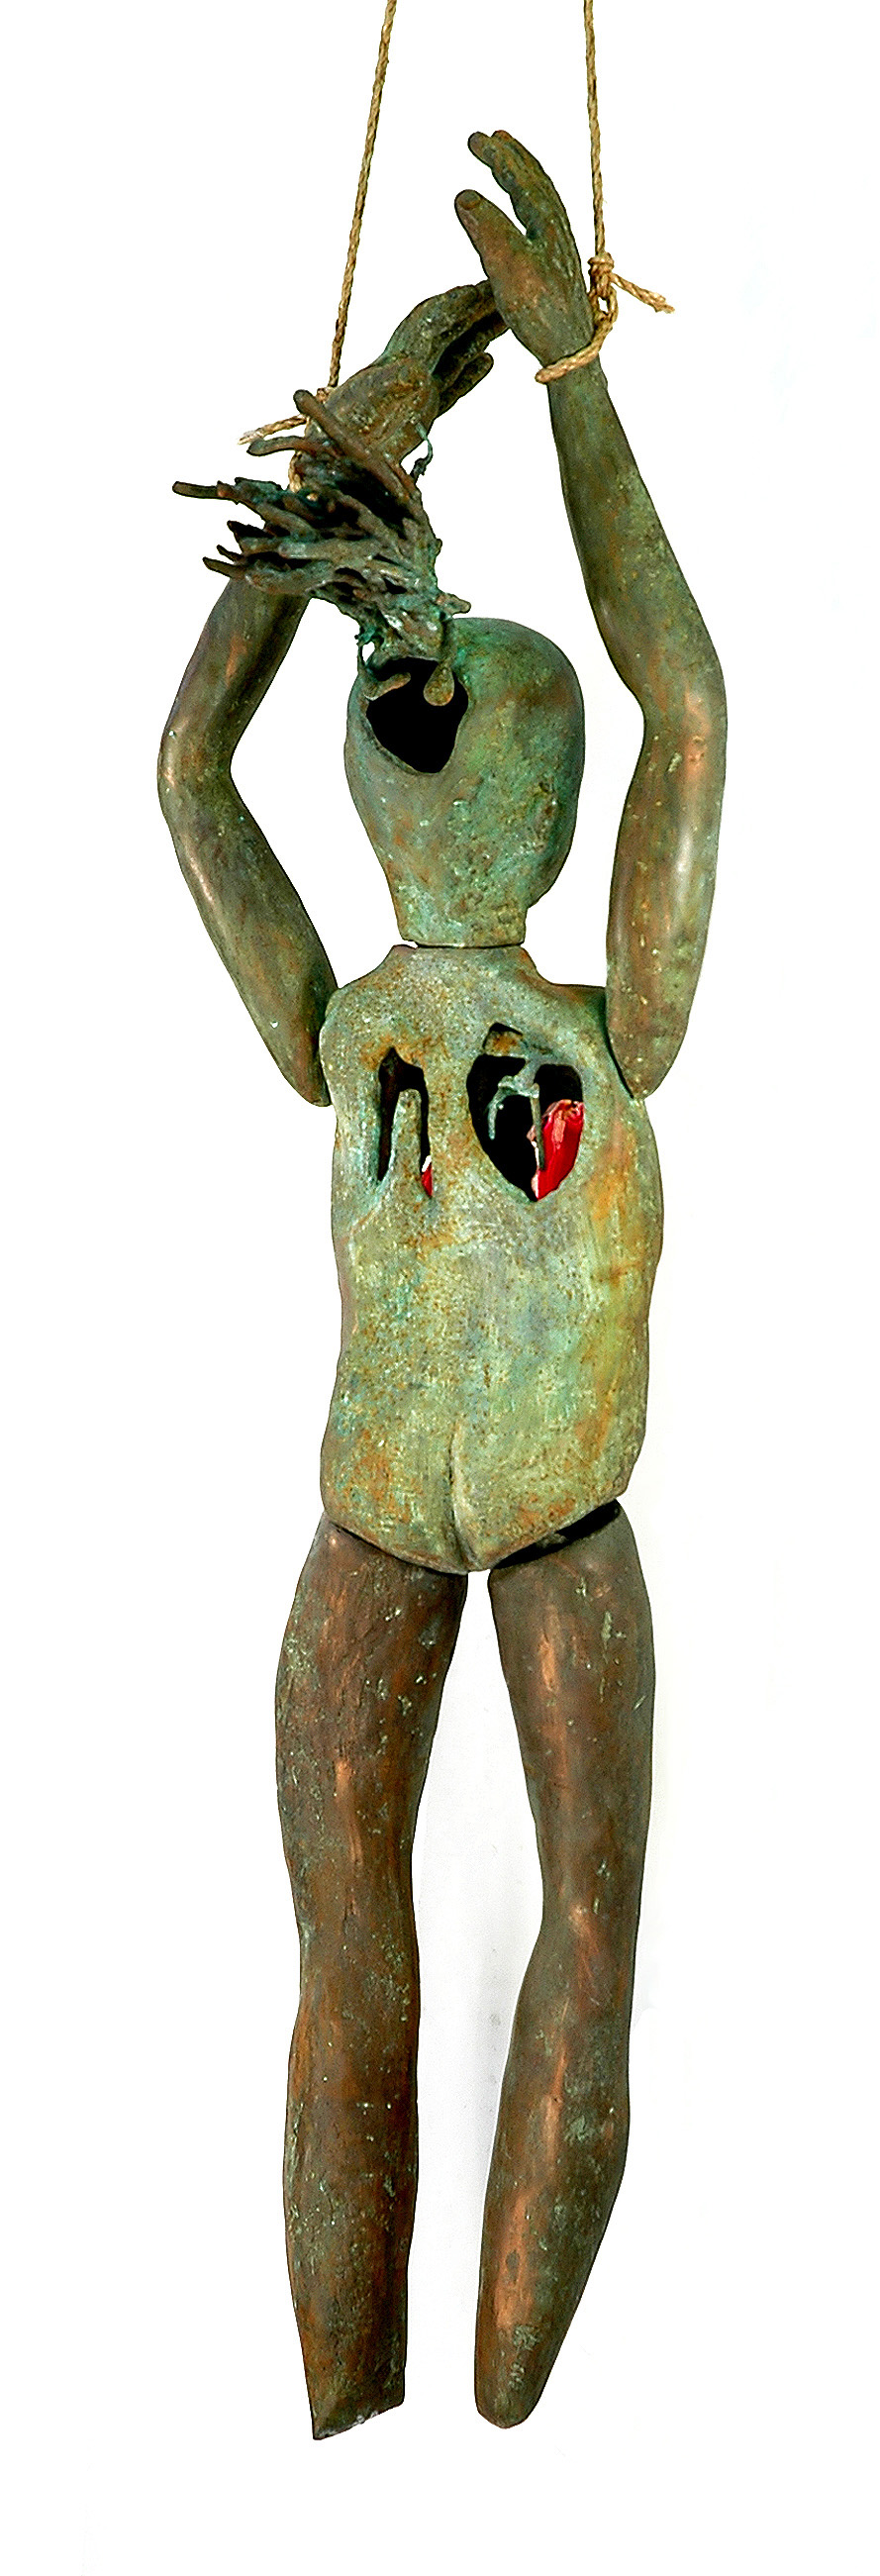 Puppet (back view), 2003-5